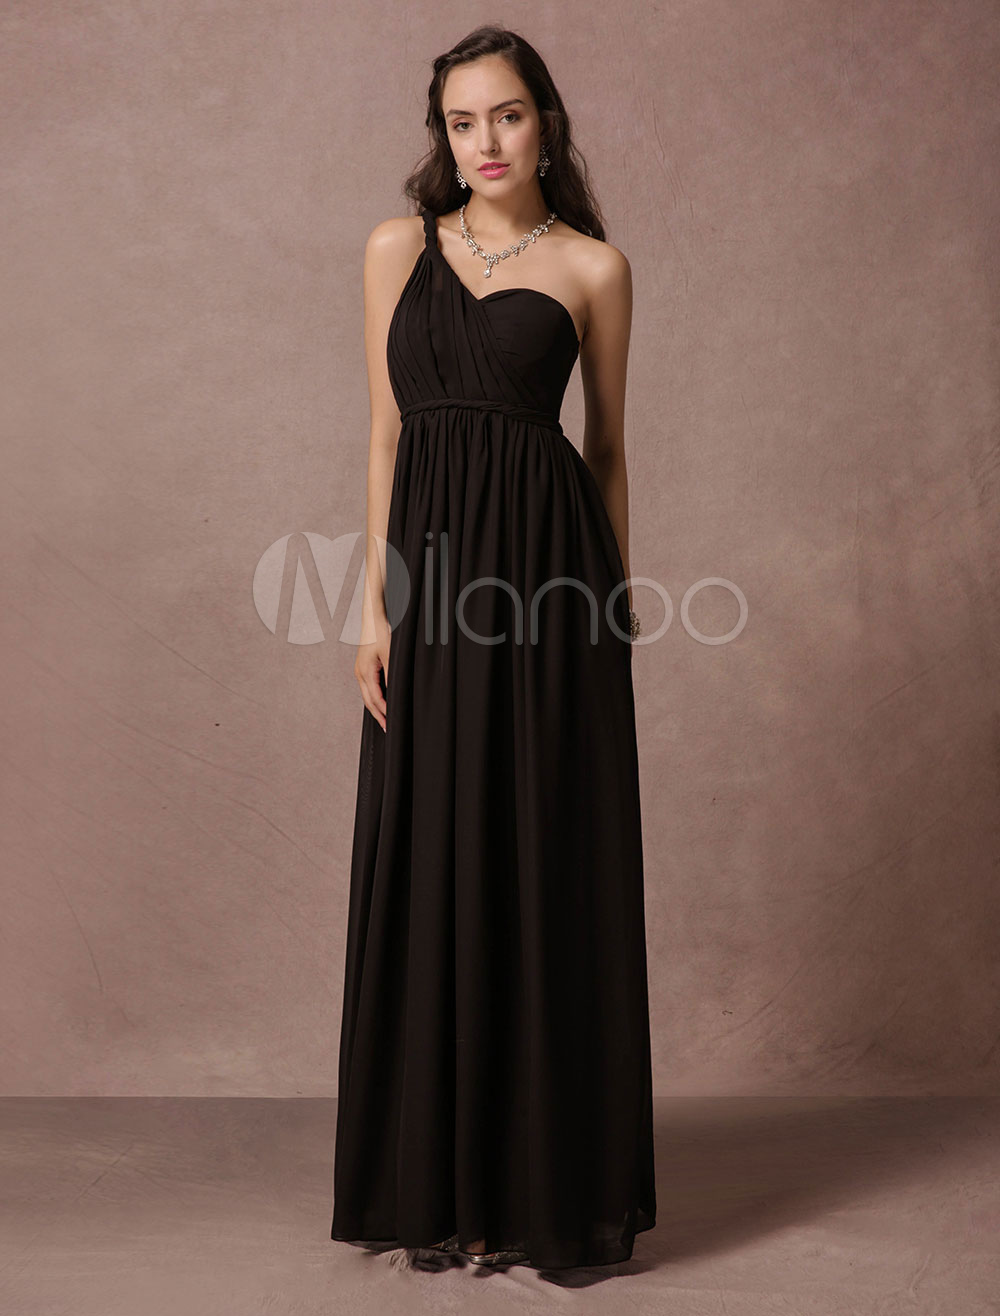 Buy Black Bridesmaid Dress Maxi Chiffon Evening Dress A Line One Shoulder Backless Floor Length Party Dress for $112.49 in Milanoo store